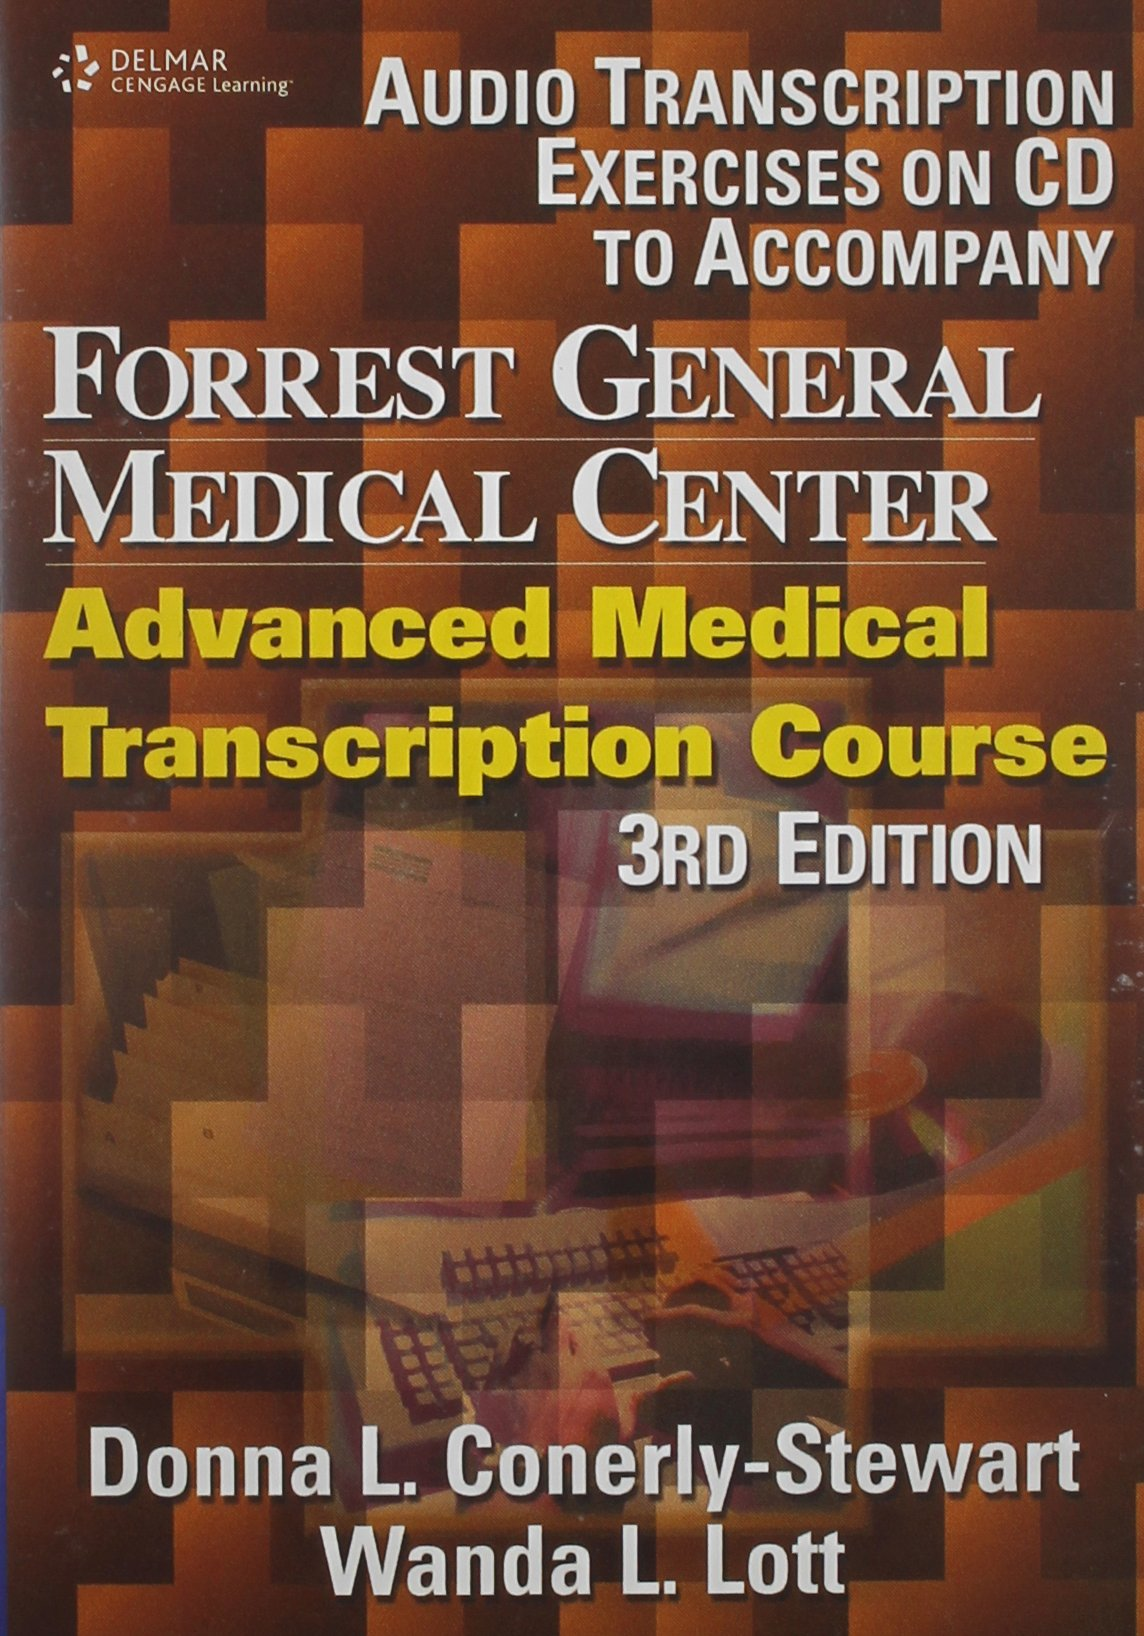 Audio CDs to Accompany Forrest General Medical Center: Advanced Medical Transcription